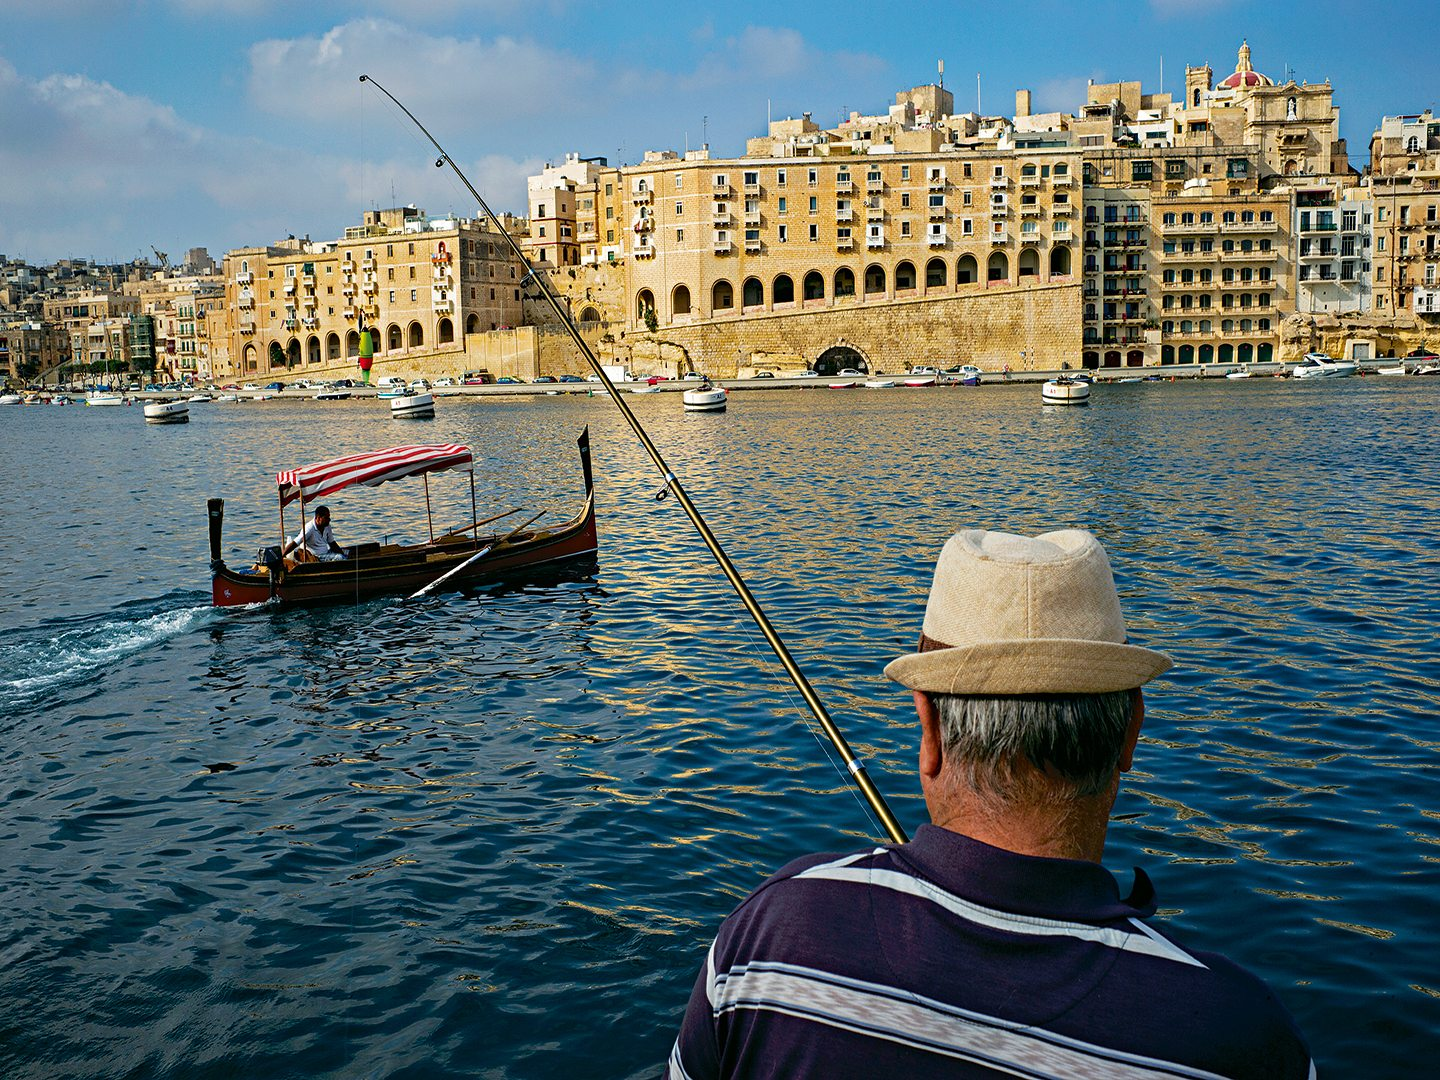 angler, valletta, malta, photo by Alex Webb